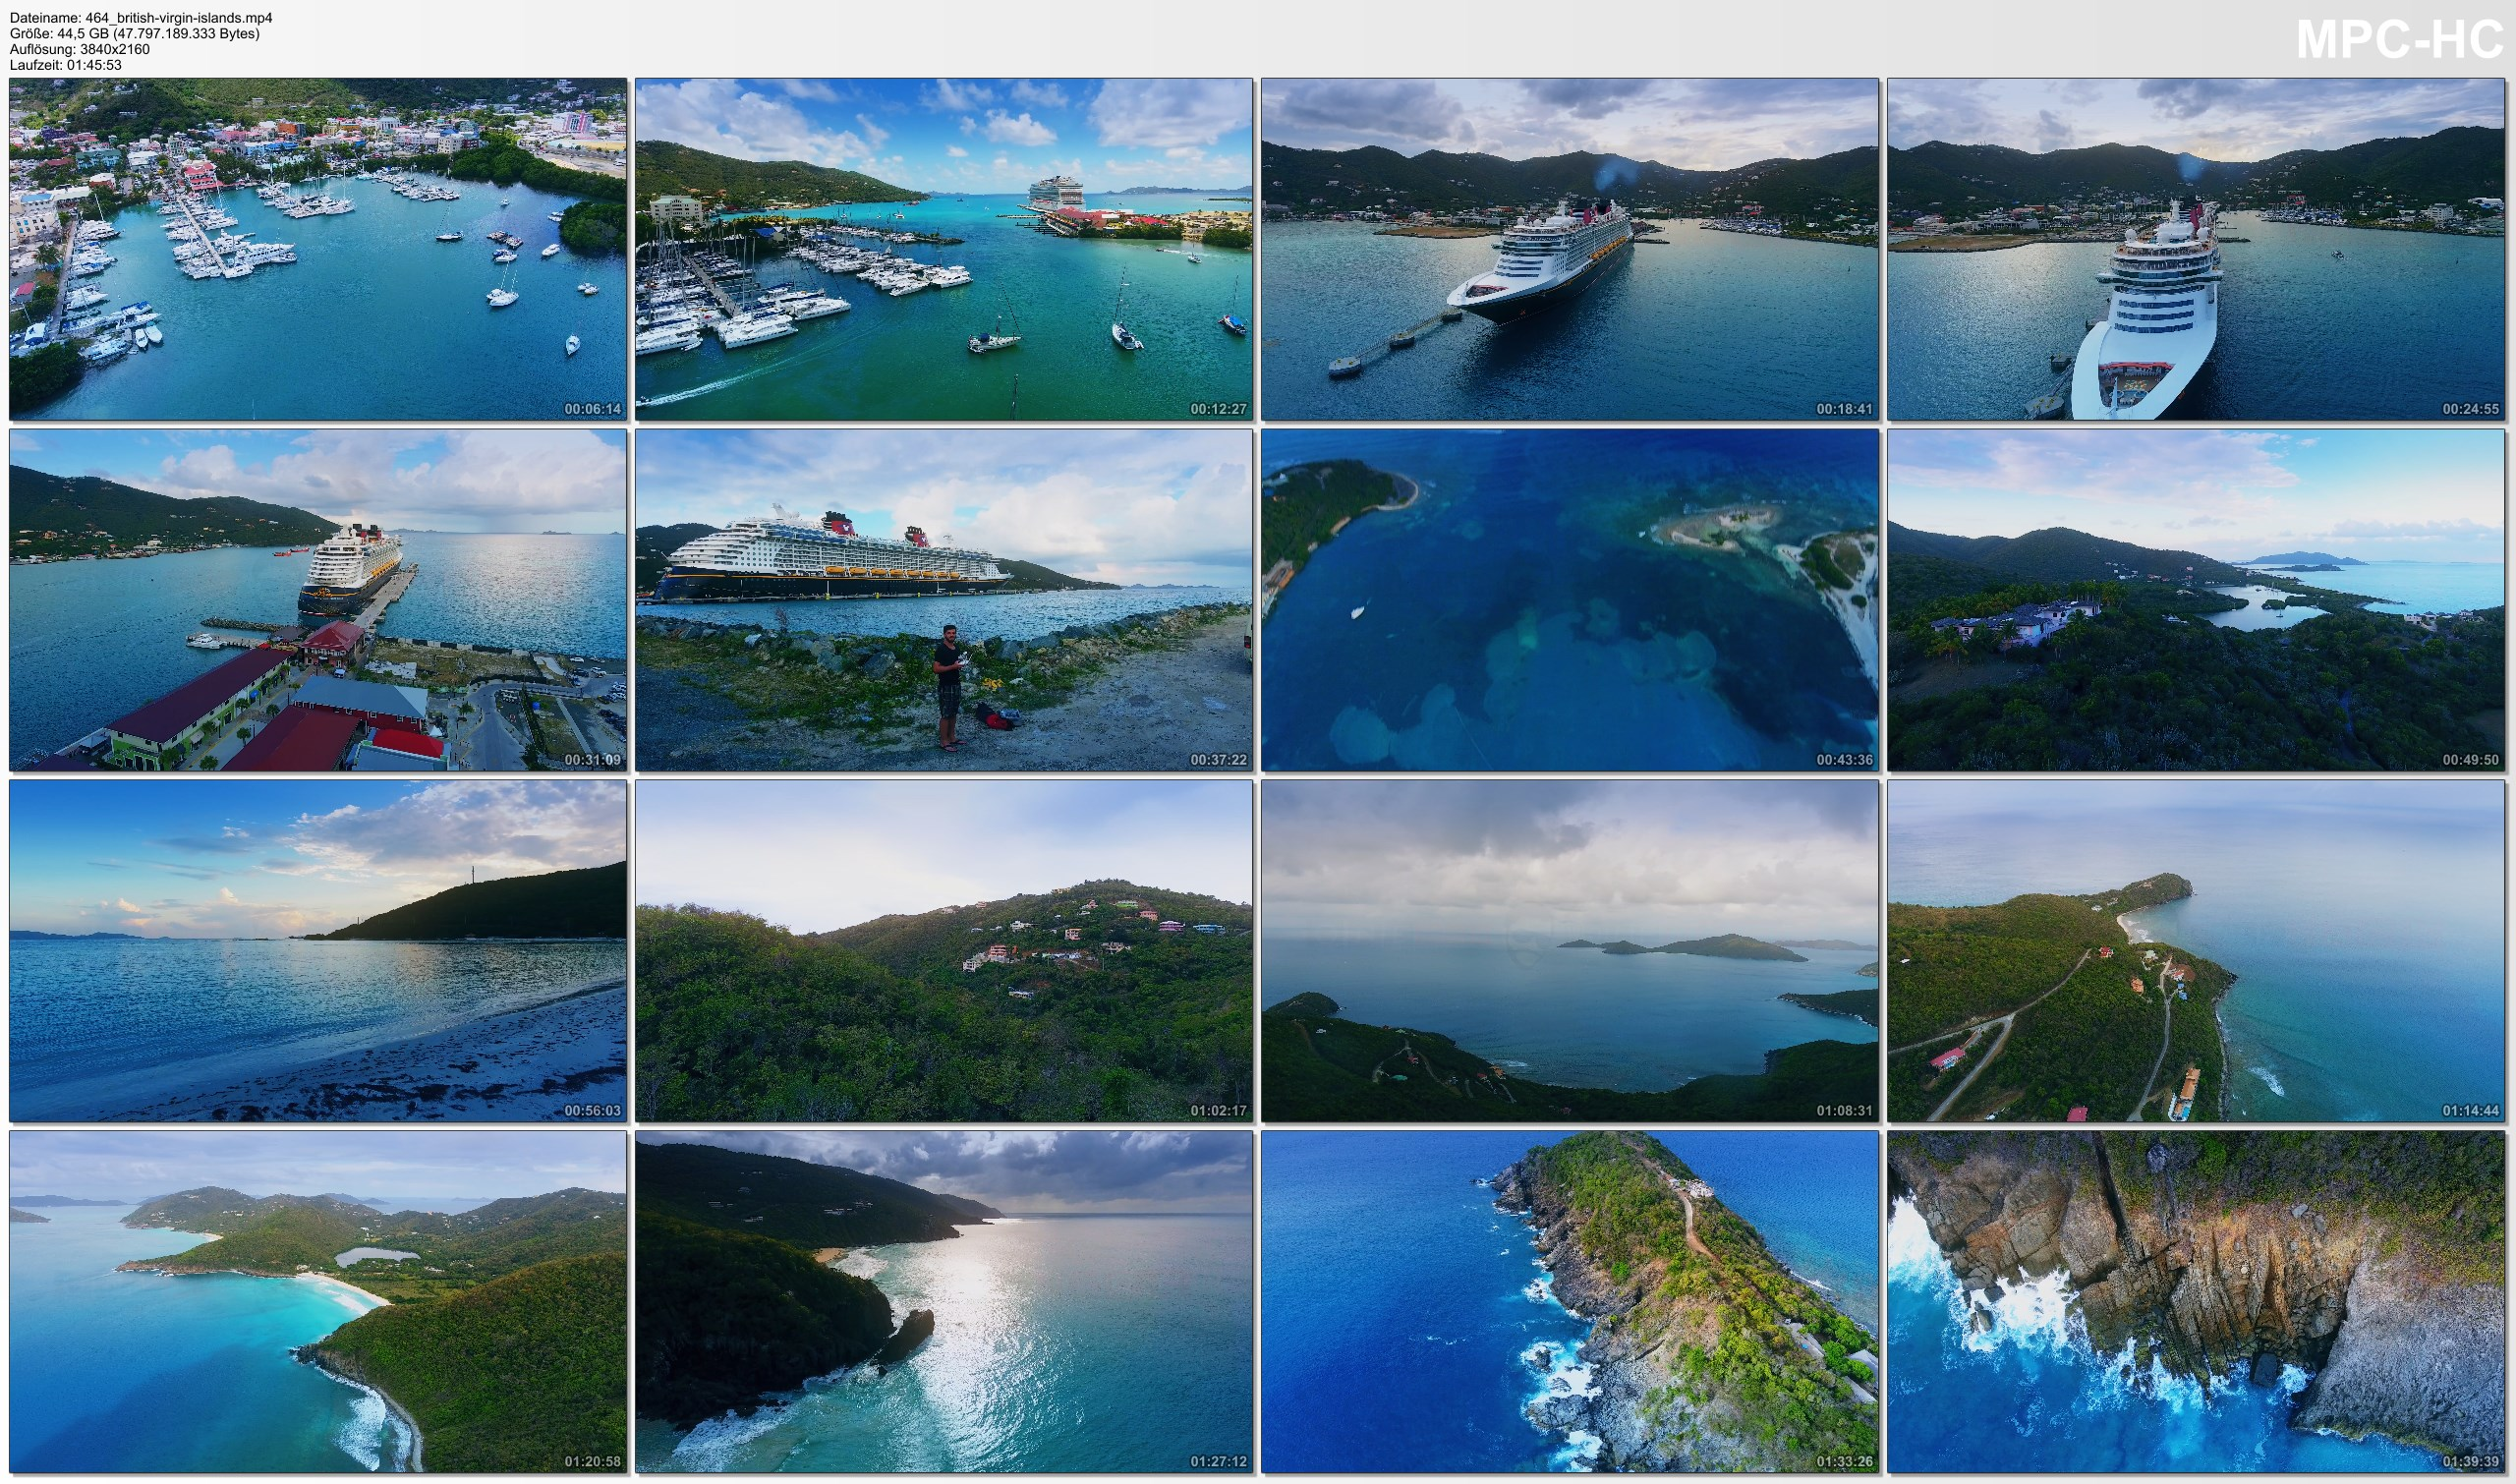 Drone Pictures from Video 【4K】Drone RAW Footage | These are the BRITISH VIRGIN ISLANDS 2020 | BVI Tortola UltraHD Stock Video